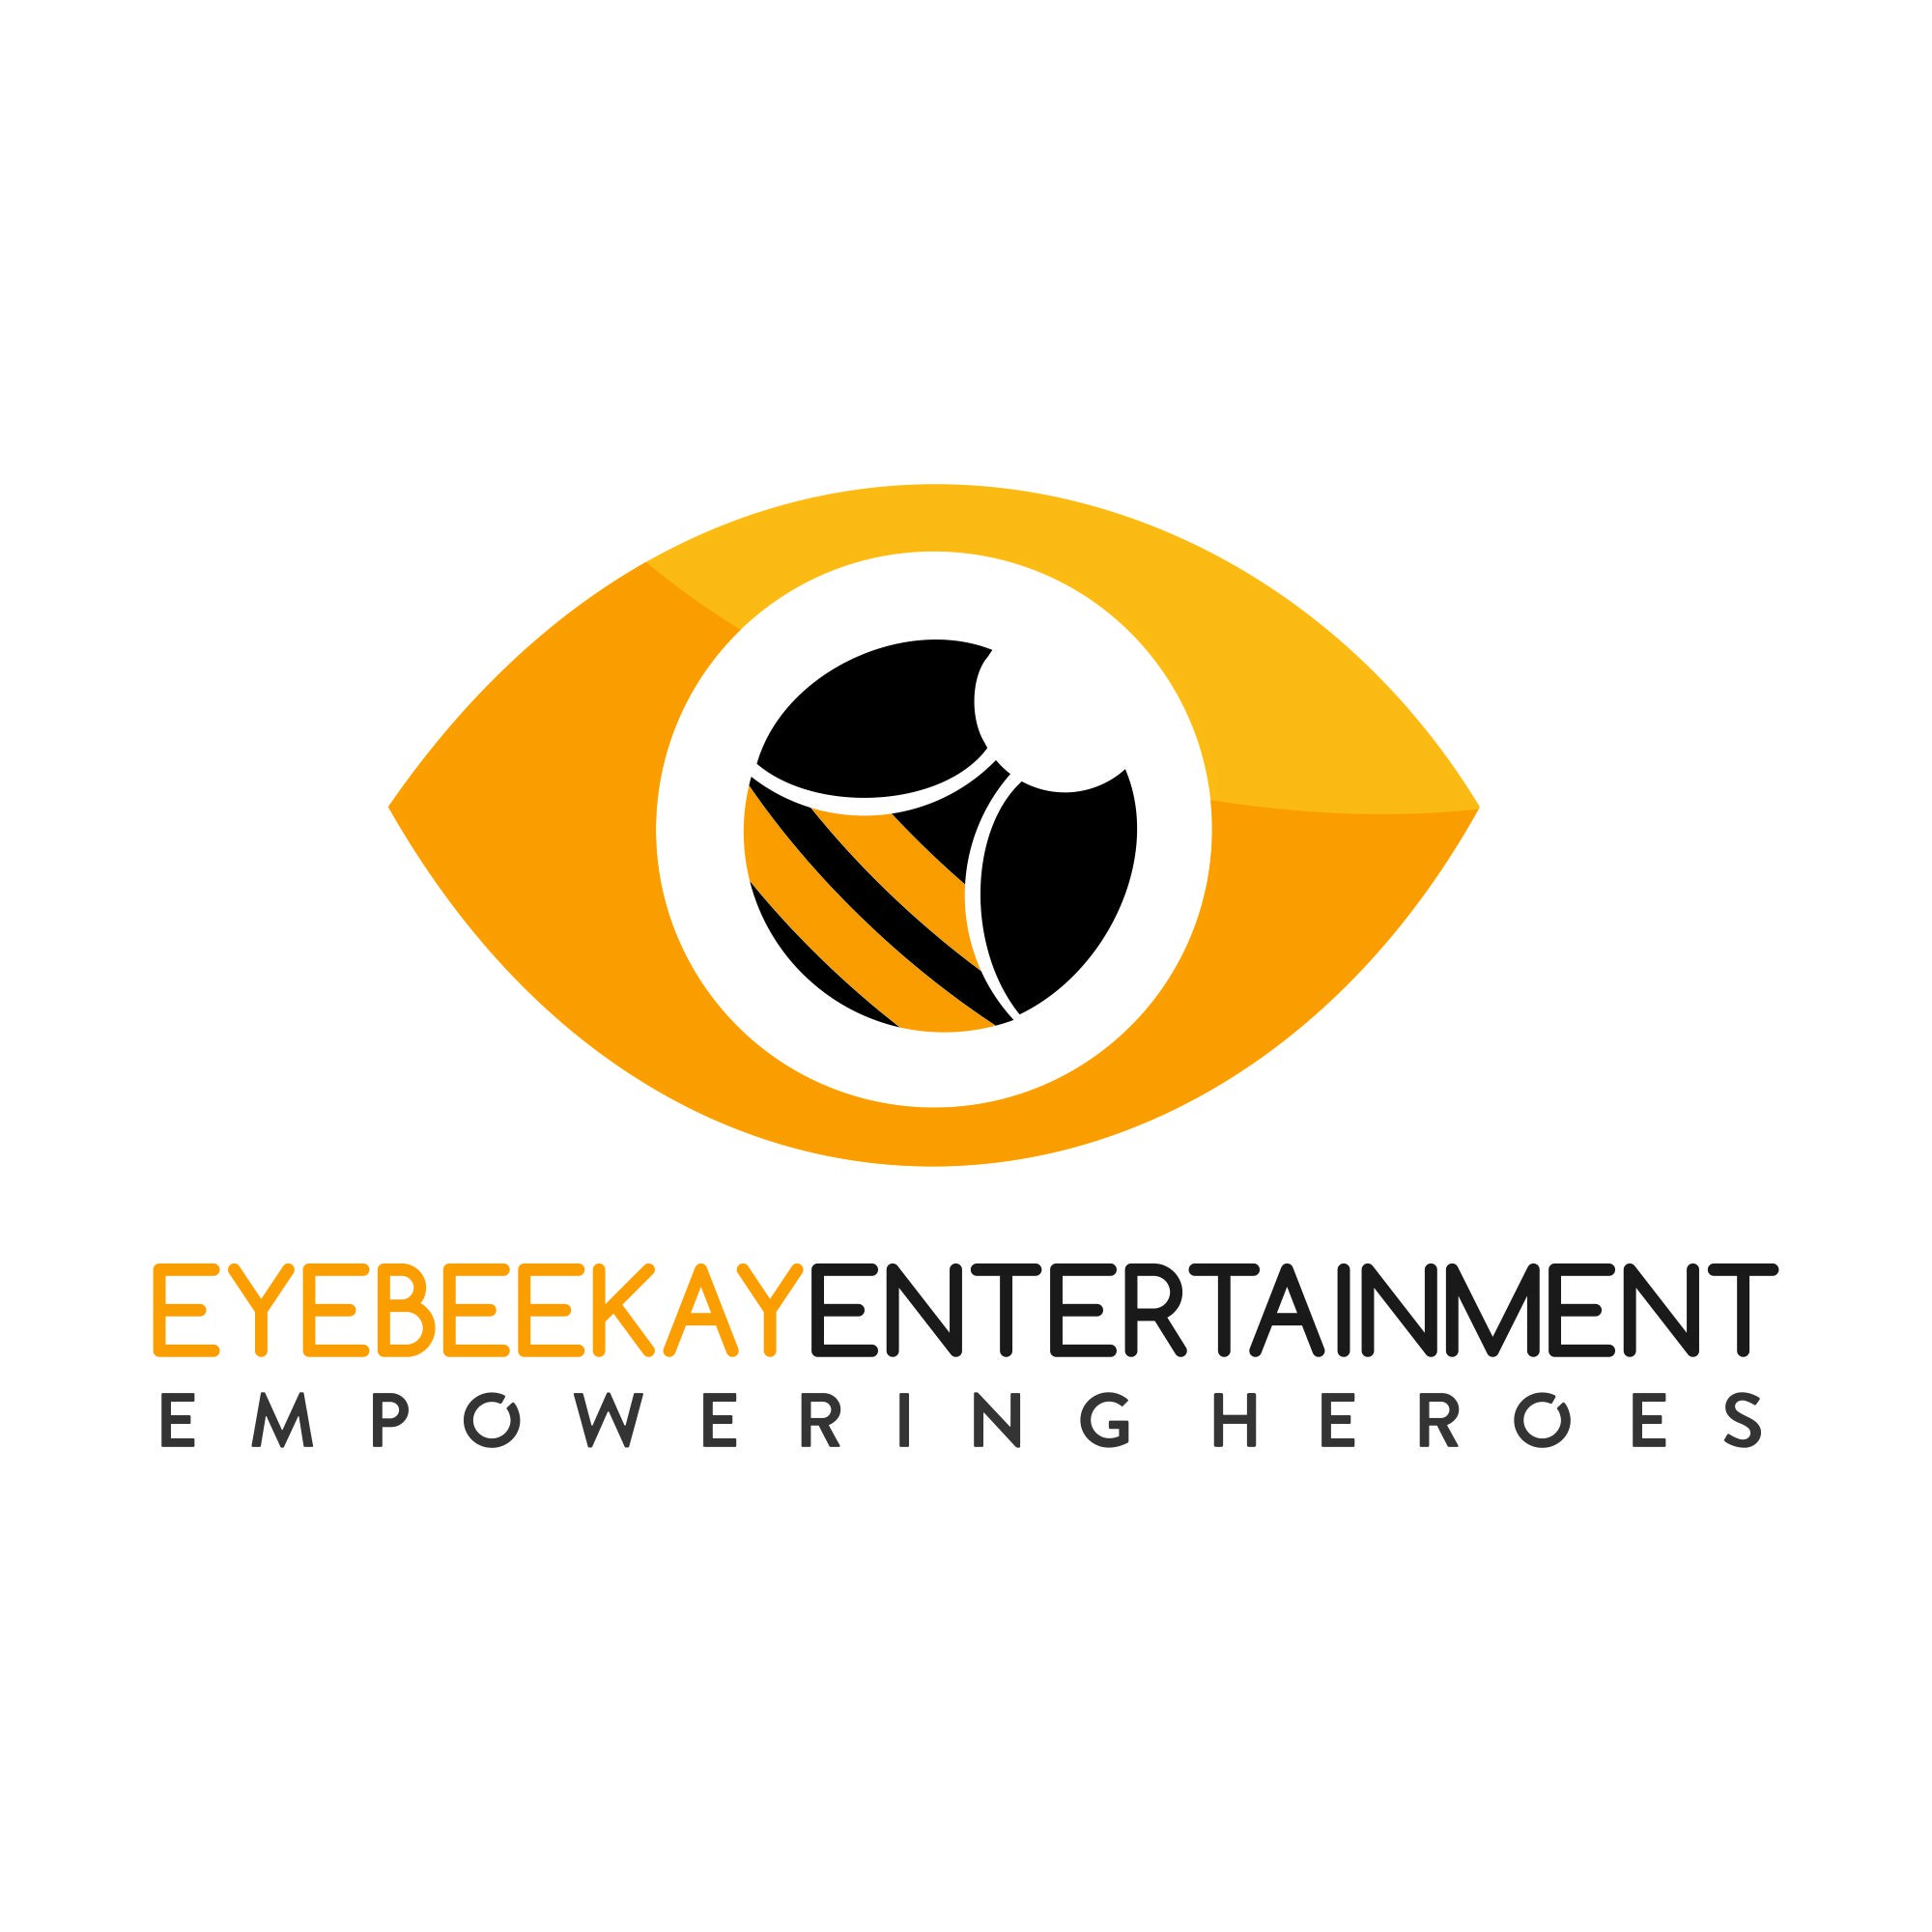 EYEBEEKAY ENTERTAINMENT needs your touch for a FUN and STYLISH branding